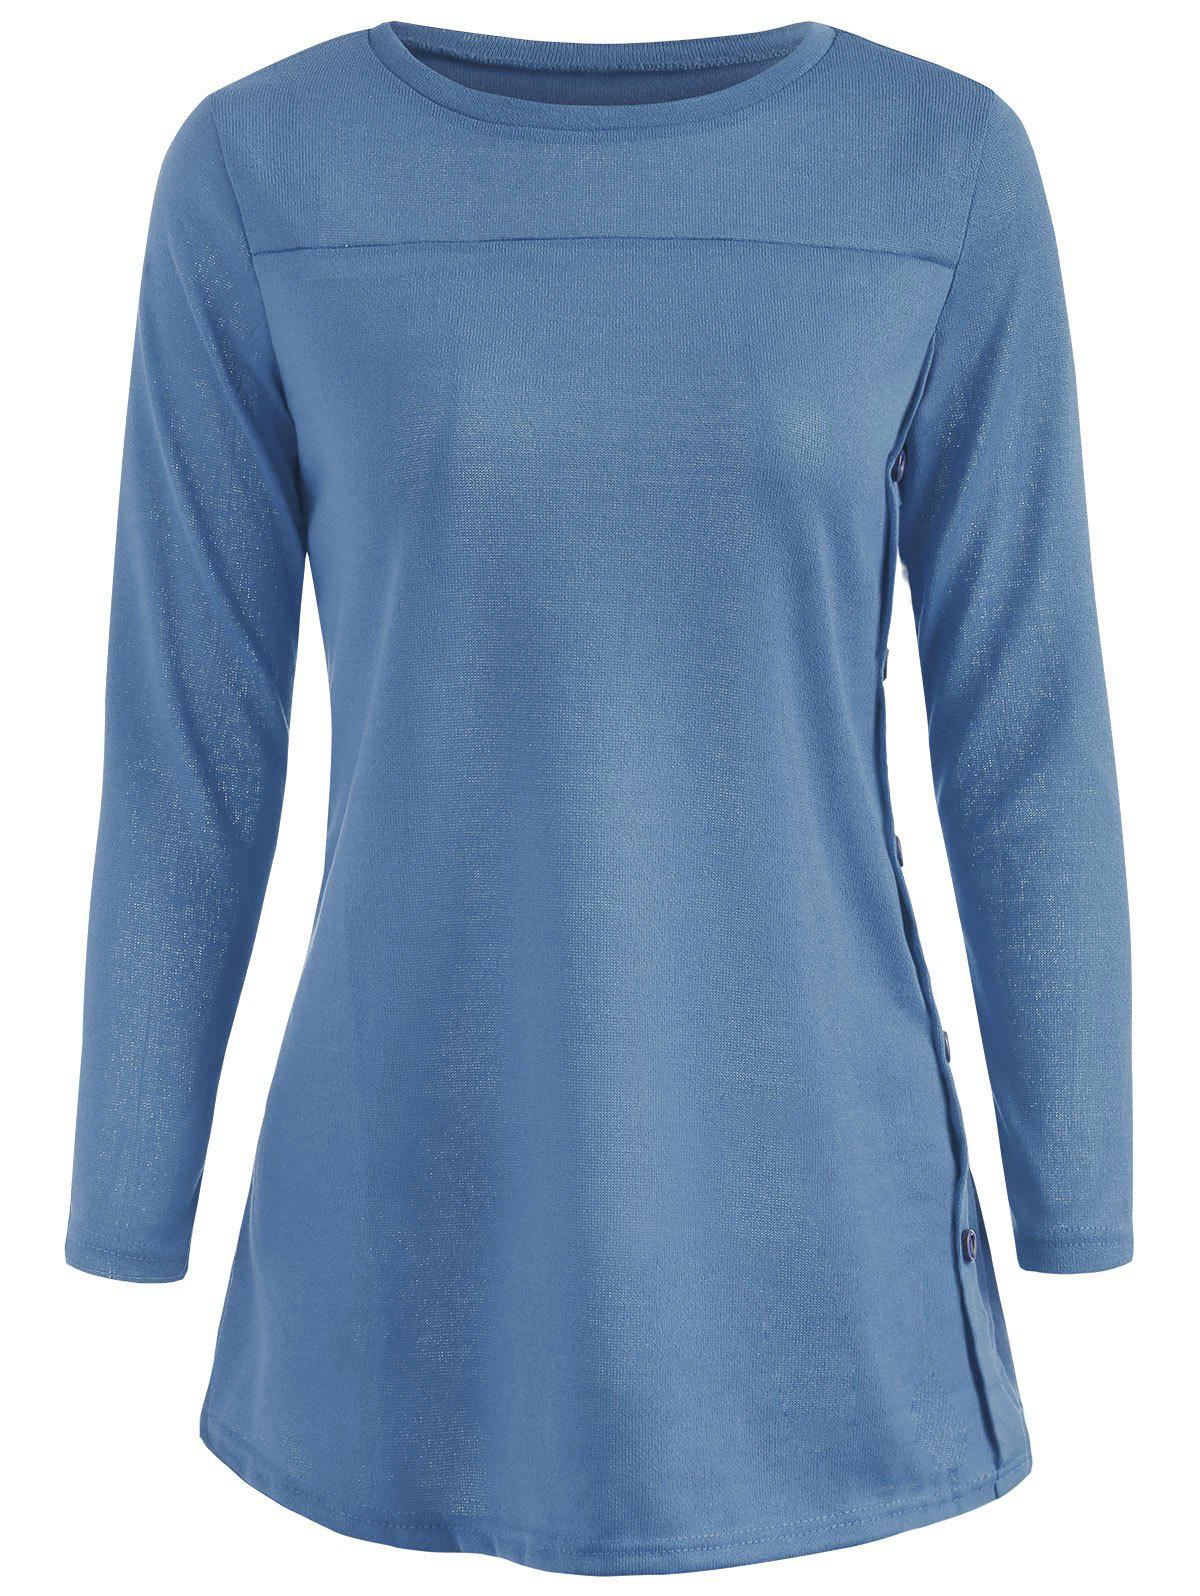 Affordable Full Sleeve T-shirt with Buttons